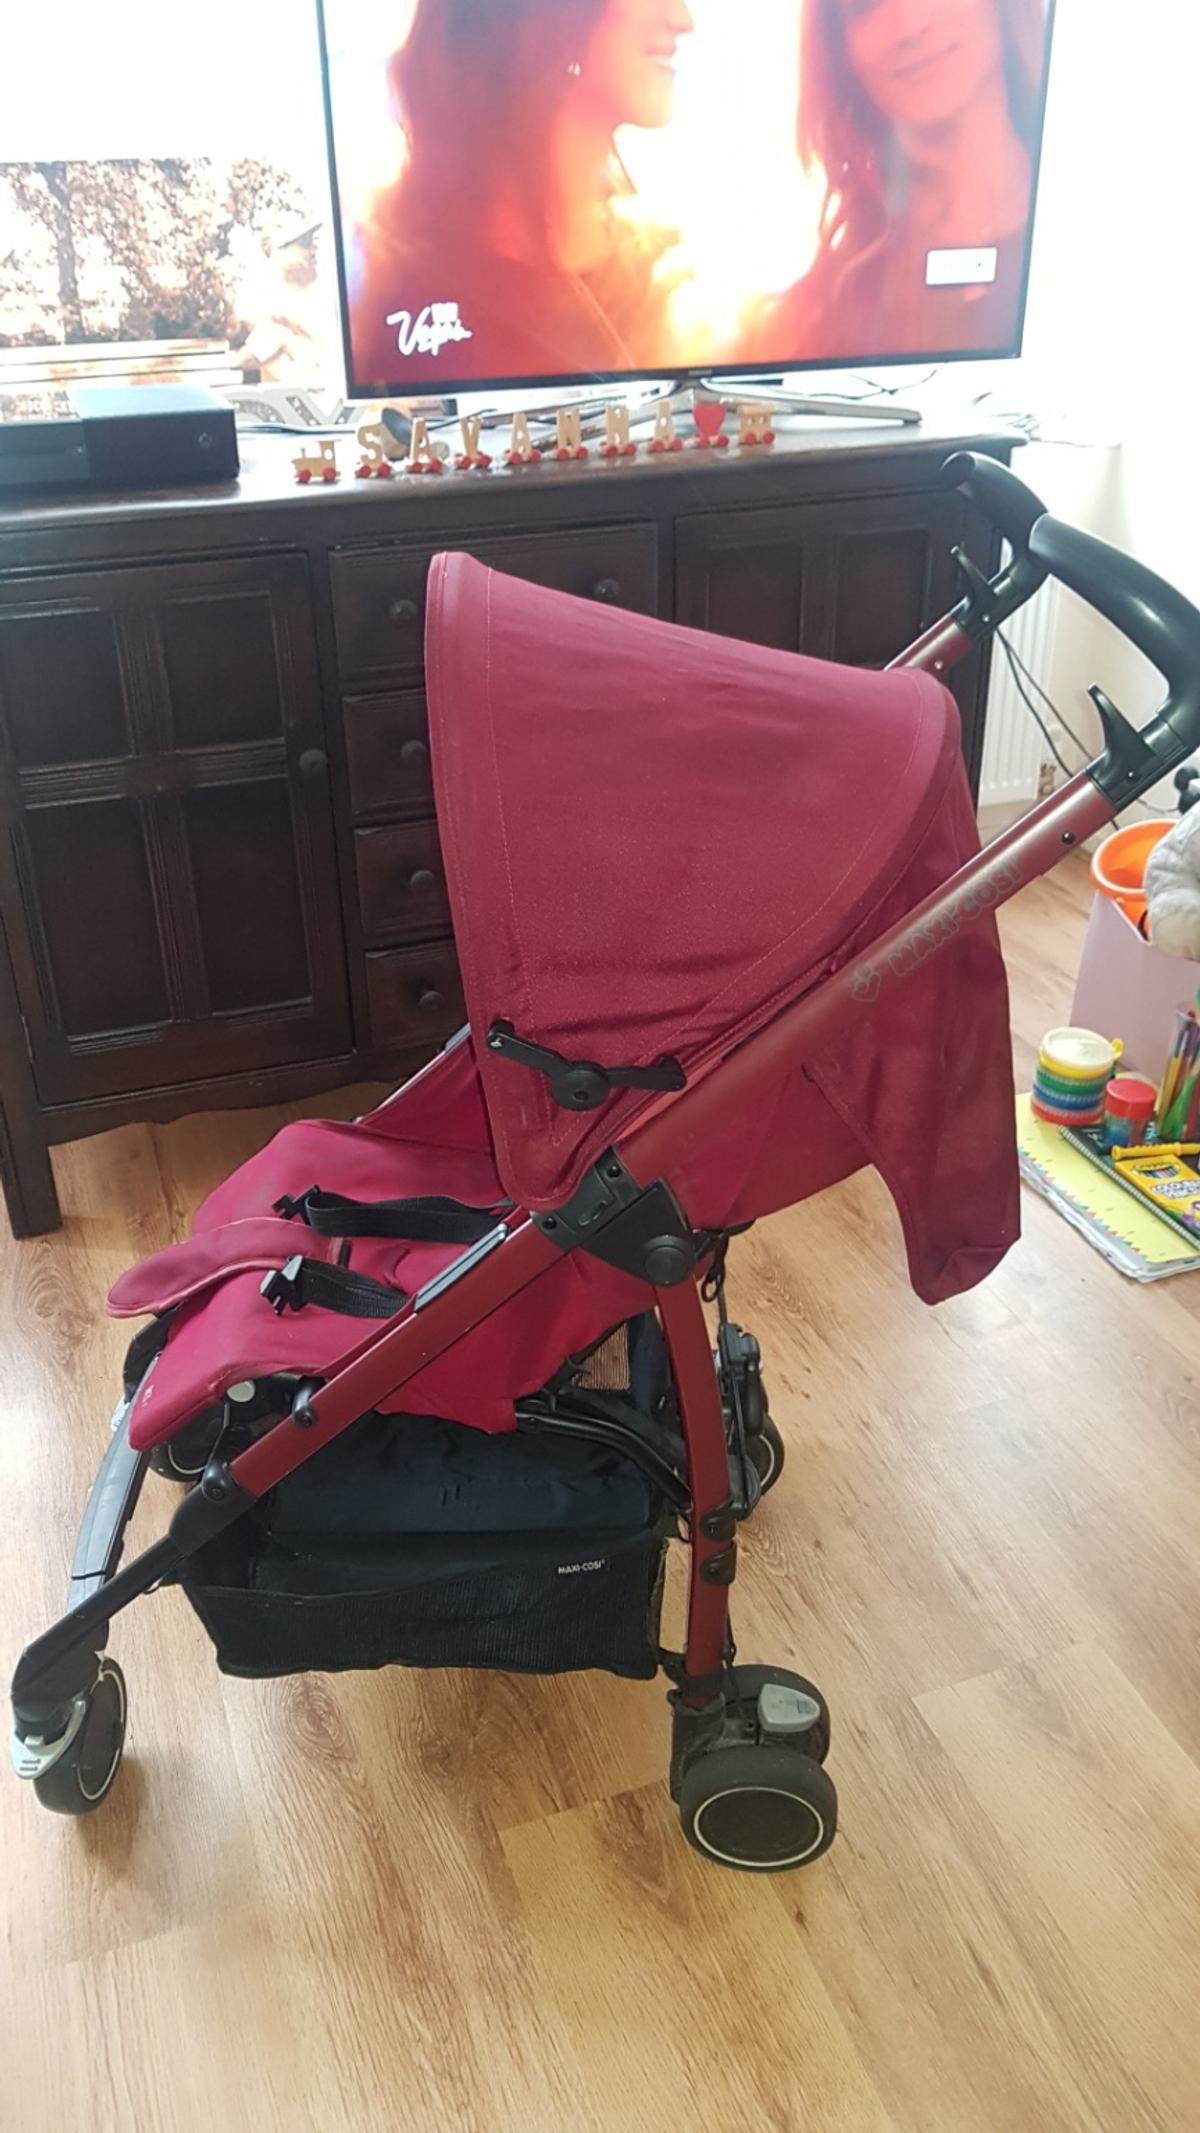 lightweight and easy to manouvre buggy. burgundy. Used for about a year, but no longer needed. still in very good condition.